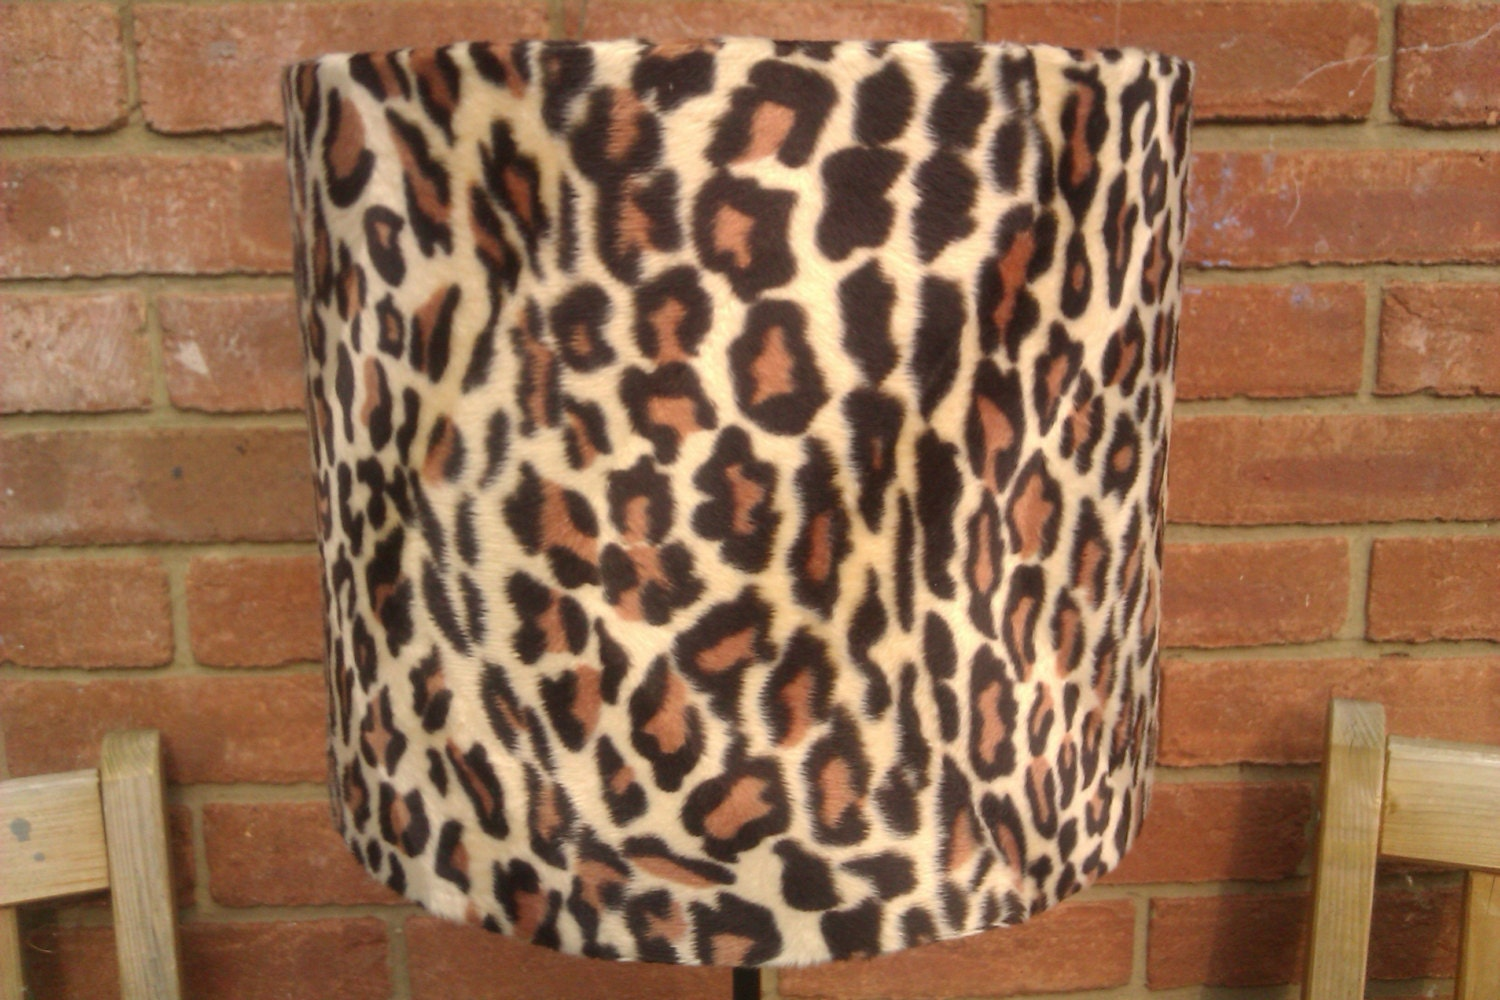 Snow Leopard Fur On Etsy A Global Handmade And Vintage